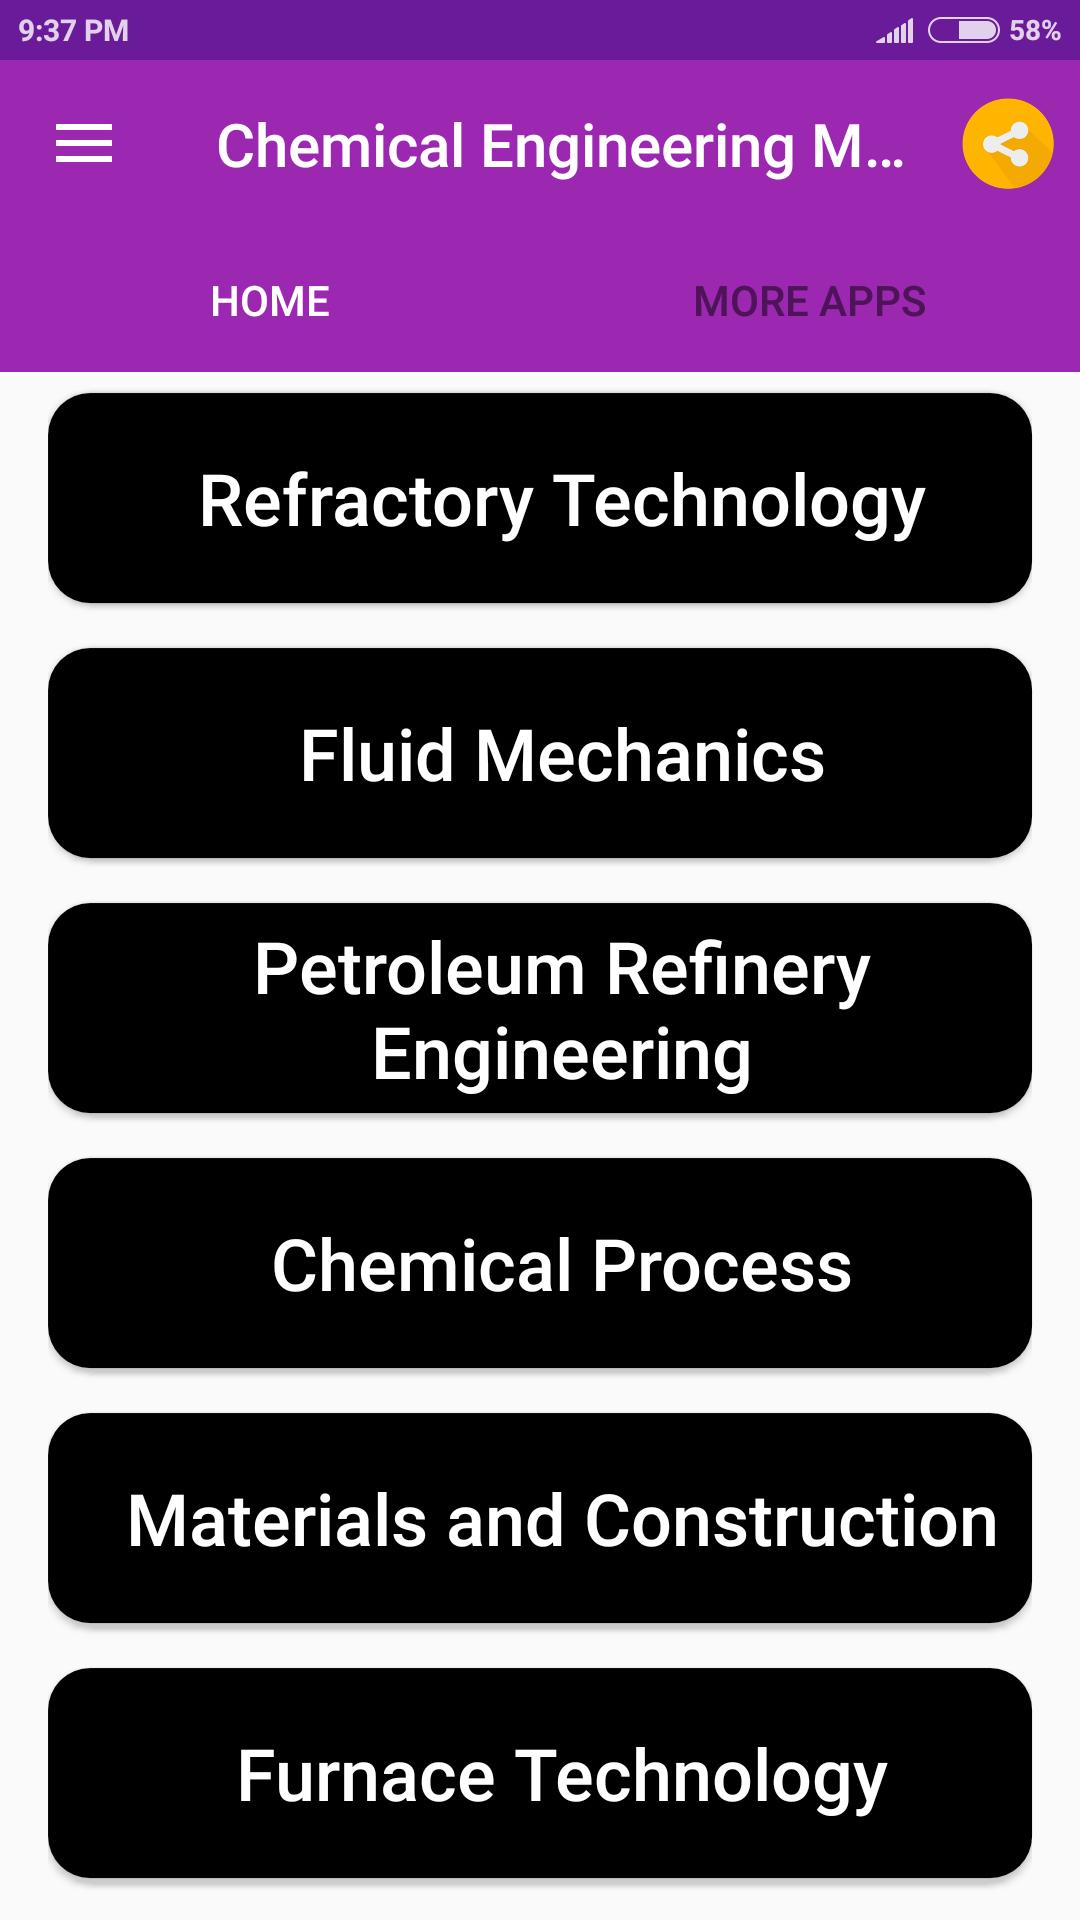 Chemical Engineering Handbook for Android - APK Download